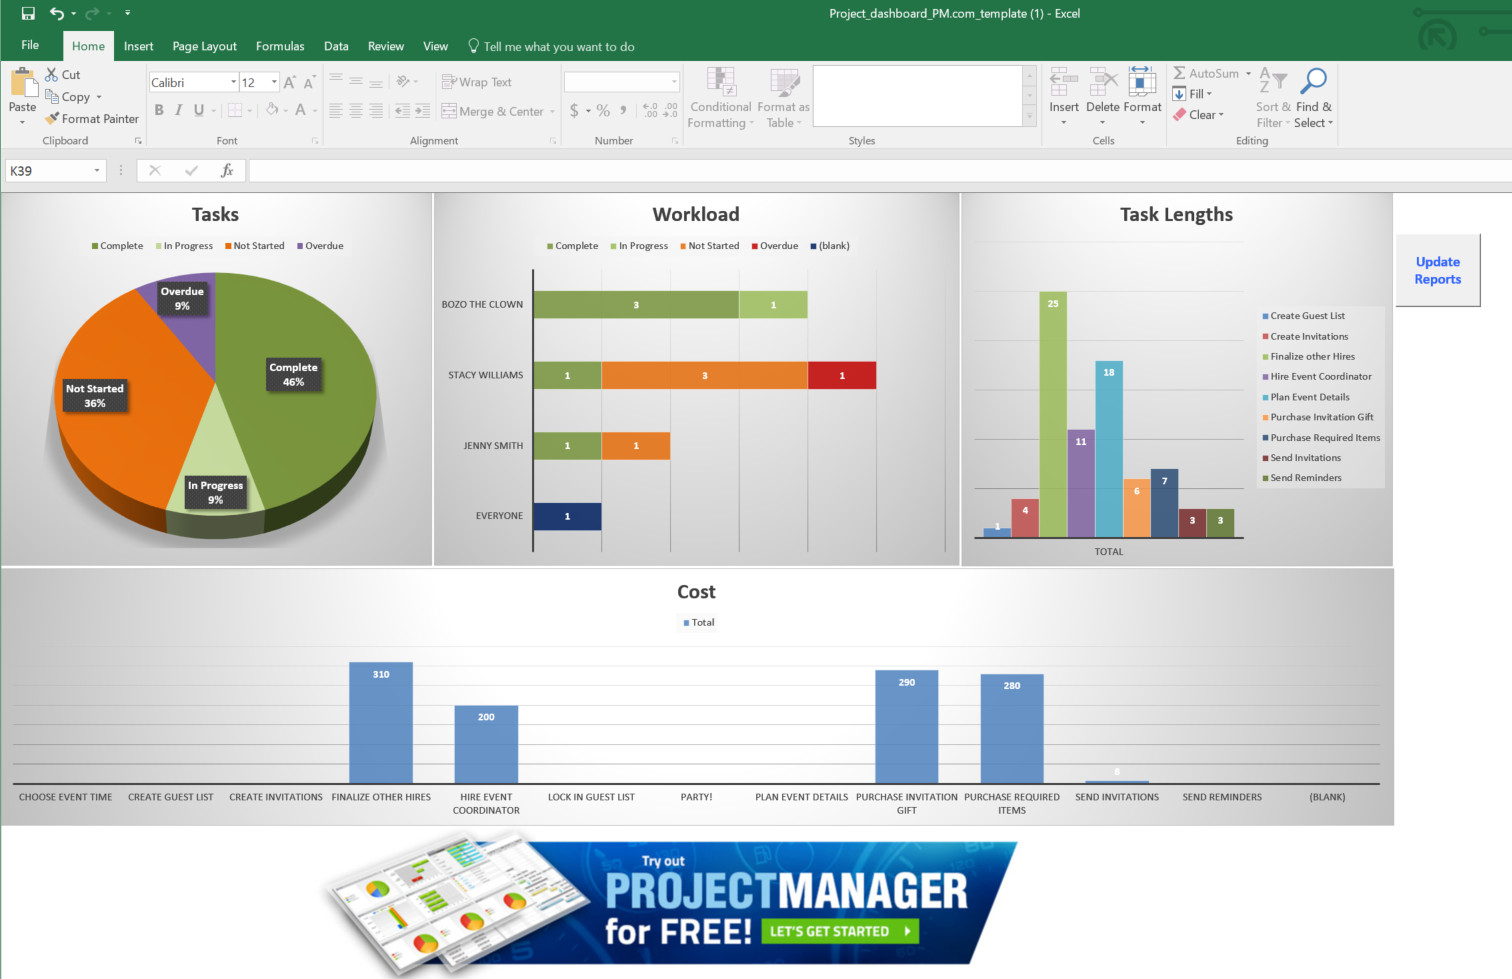 Guide To Excel Project Management - Projectmanager Inside Project Management Excel Spreadsheet